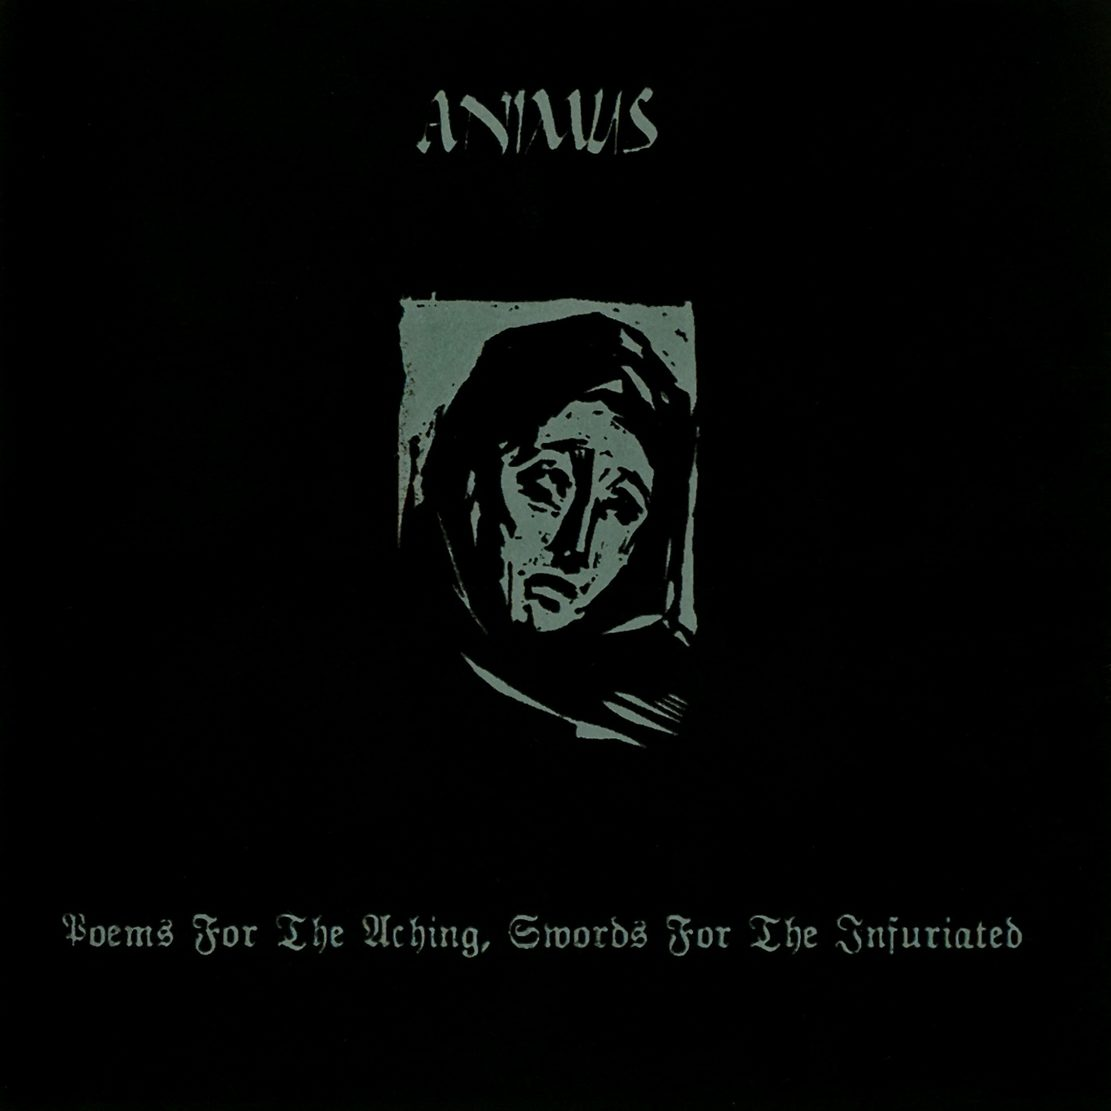 Animus - Poems for the Aching, Swords for the Infuriated